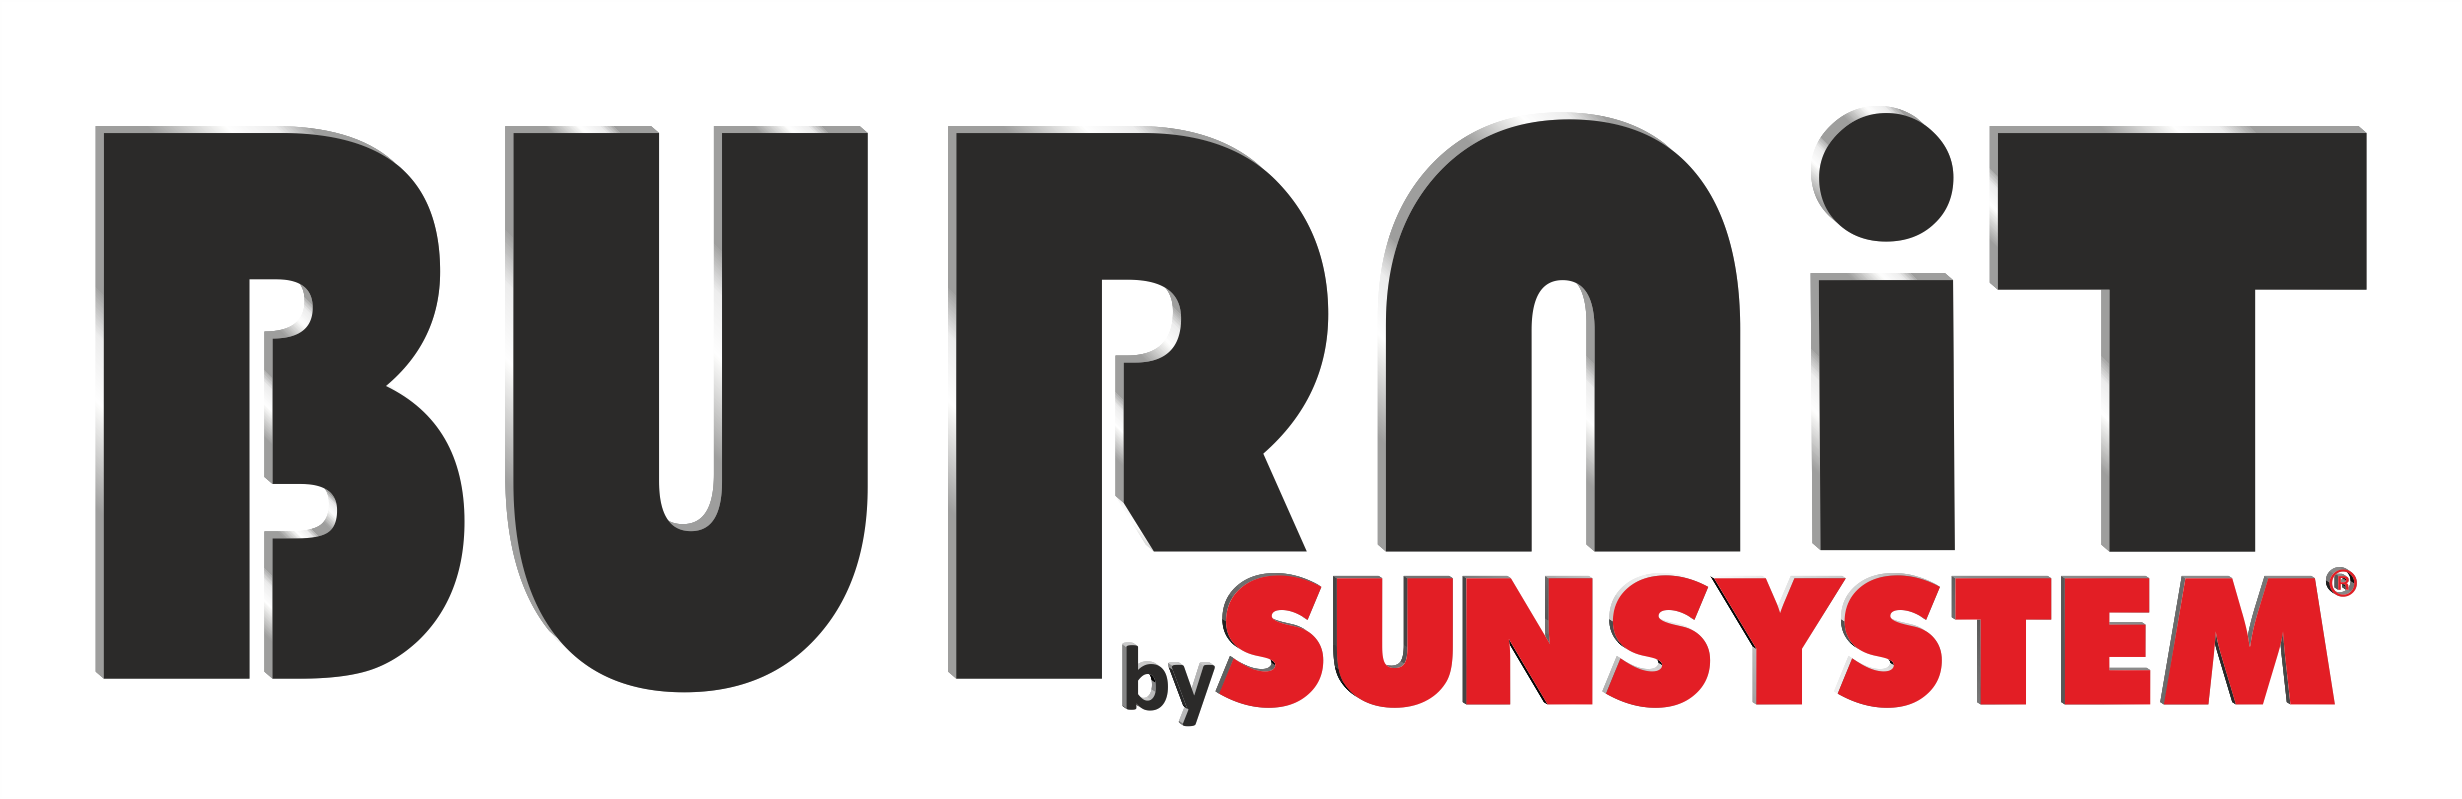 Burnit Sunsystem